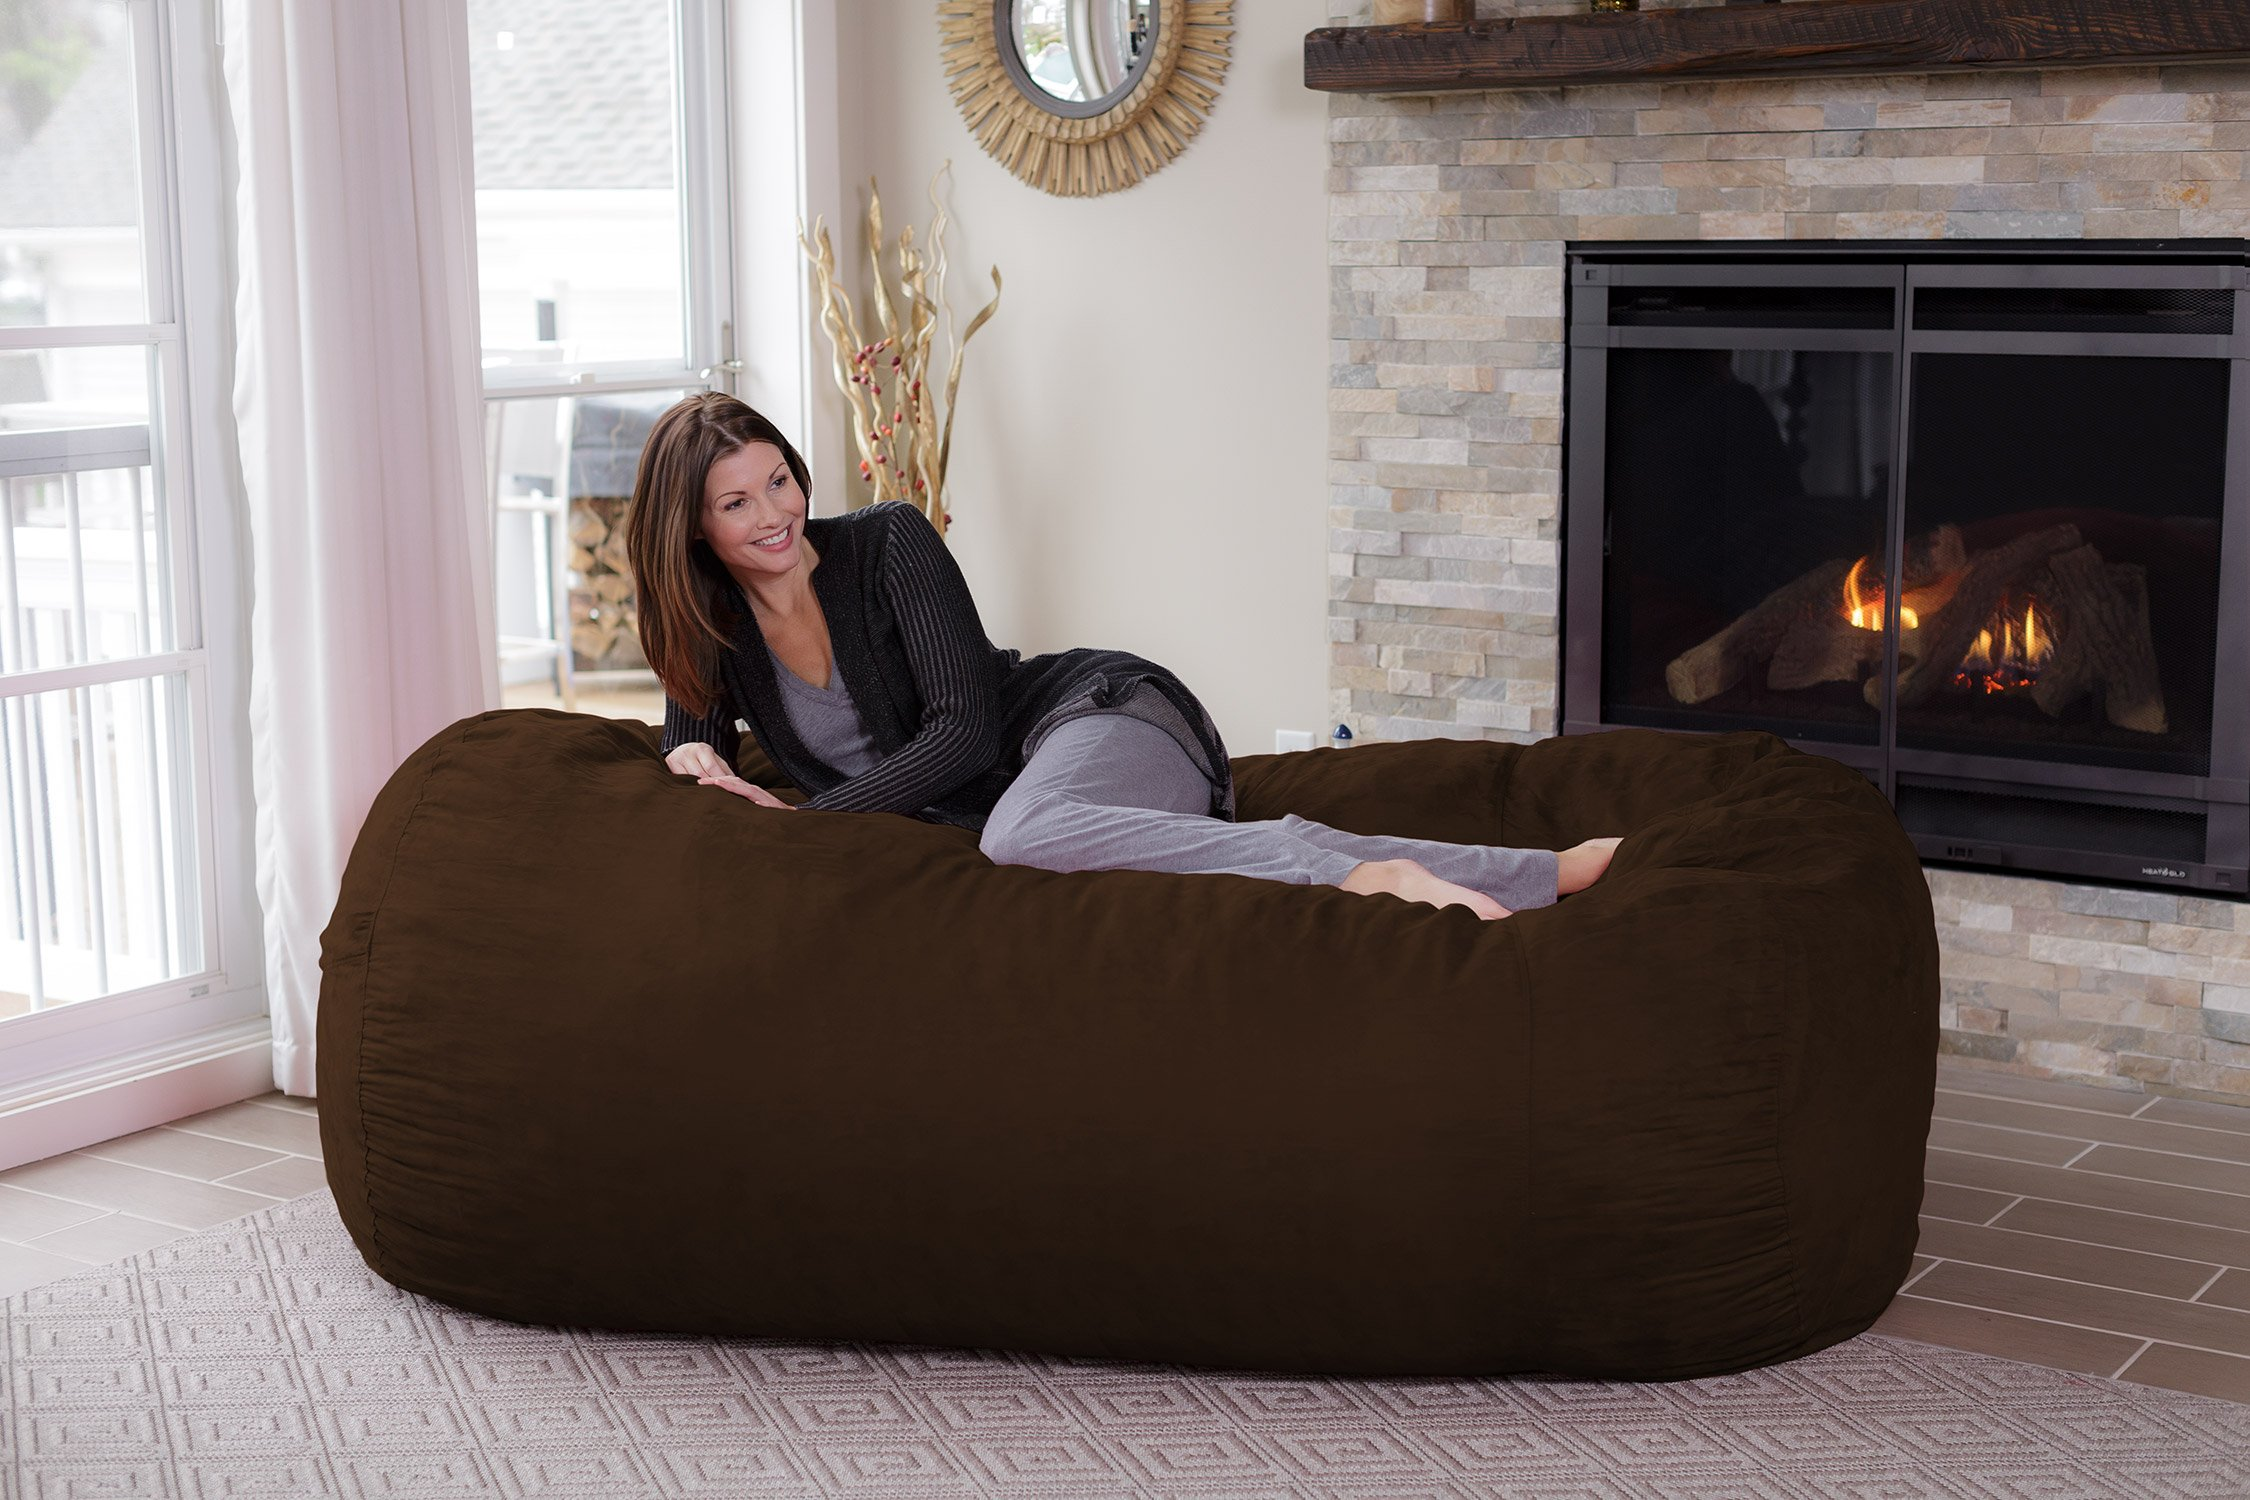 Chill Sack Memory Foam Bean Bag Lounger, 7.5-Feet, Chocolate by Chill Sack (Image #3)